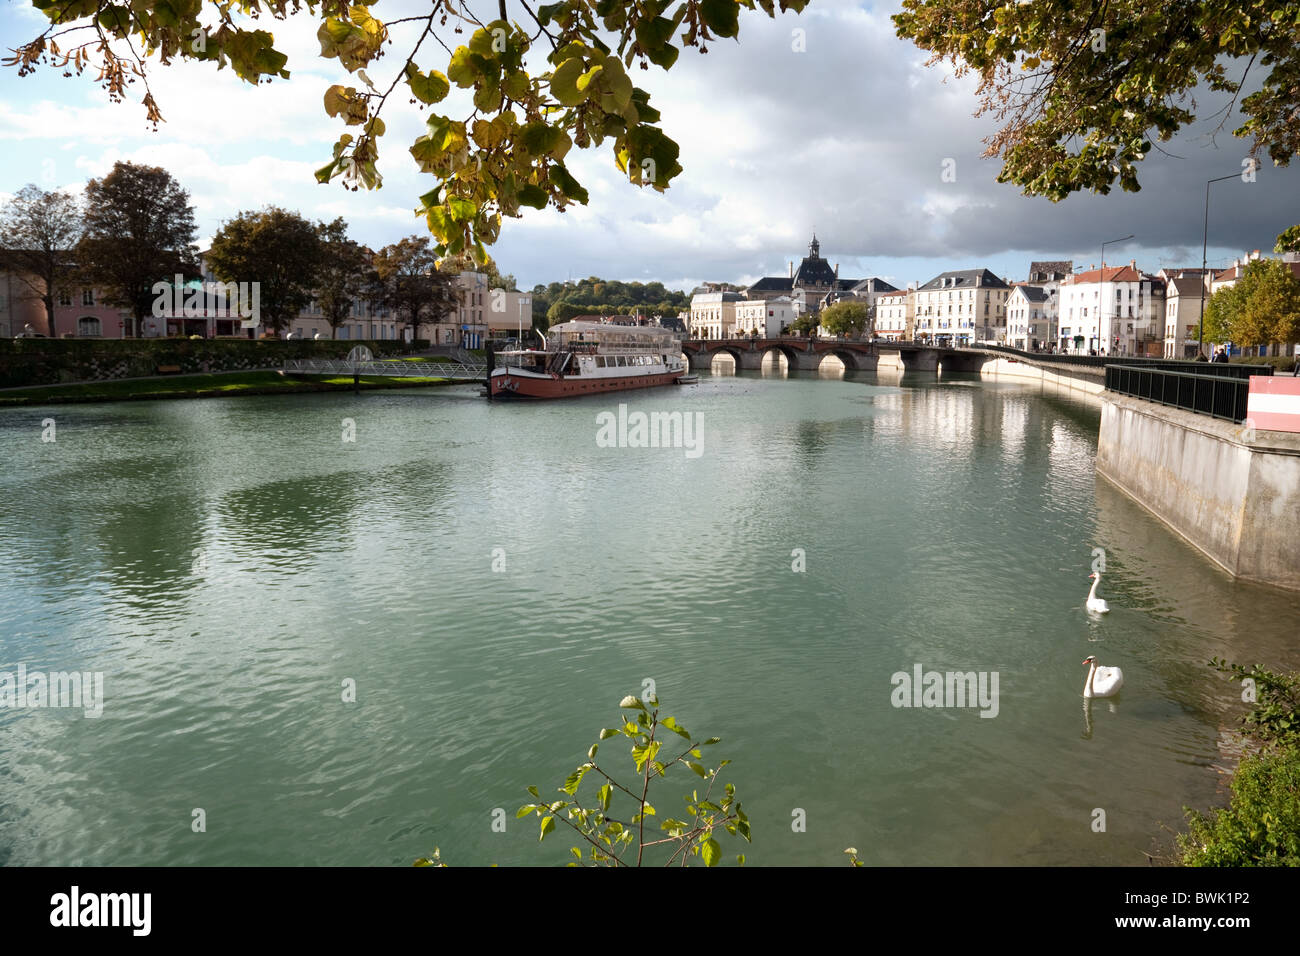 Swans on the river Marne in Meaux, Ile de France Northern France - Stock Image